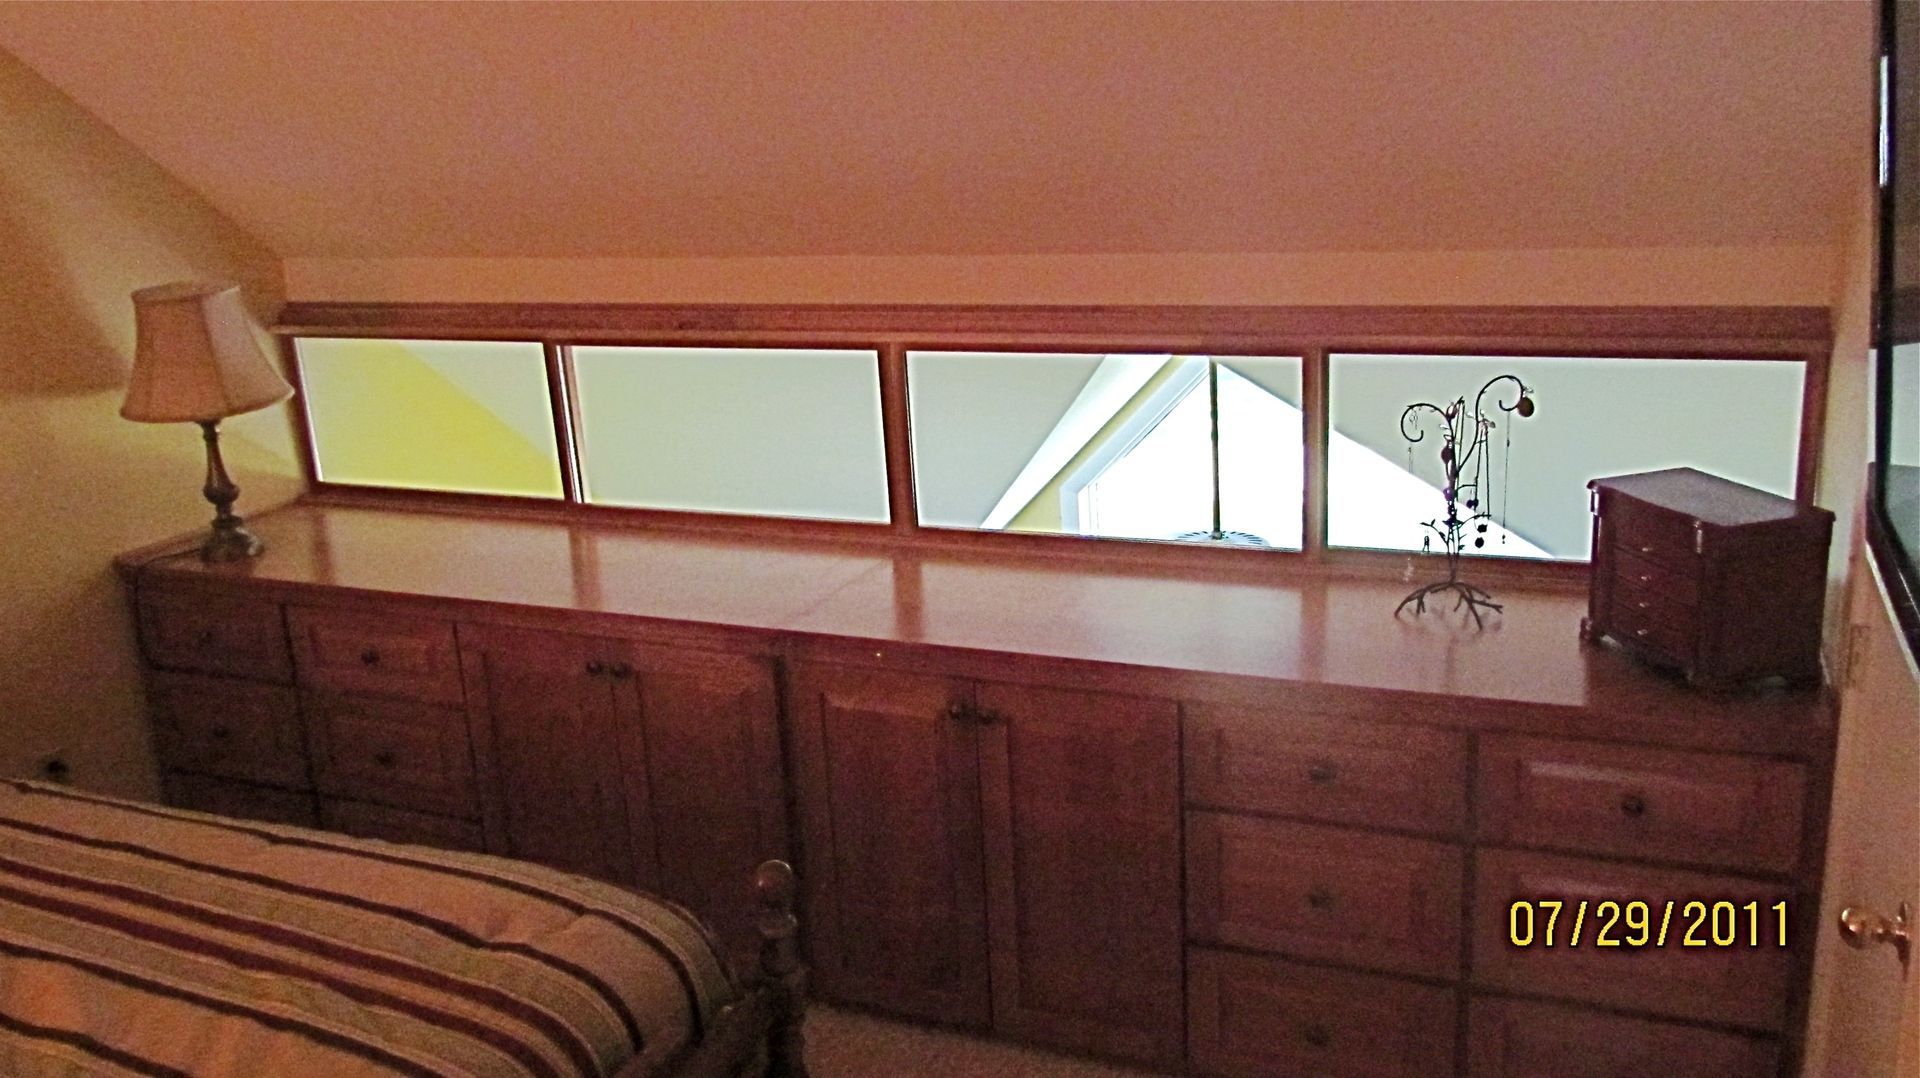 Custom Made Solid Cherry Built In His And Hers Dresser With Sliding Windows. Hand Crafted Solid Cherry Built In His And Hers Dresser With